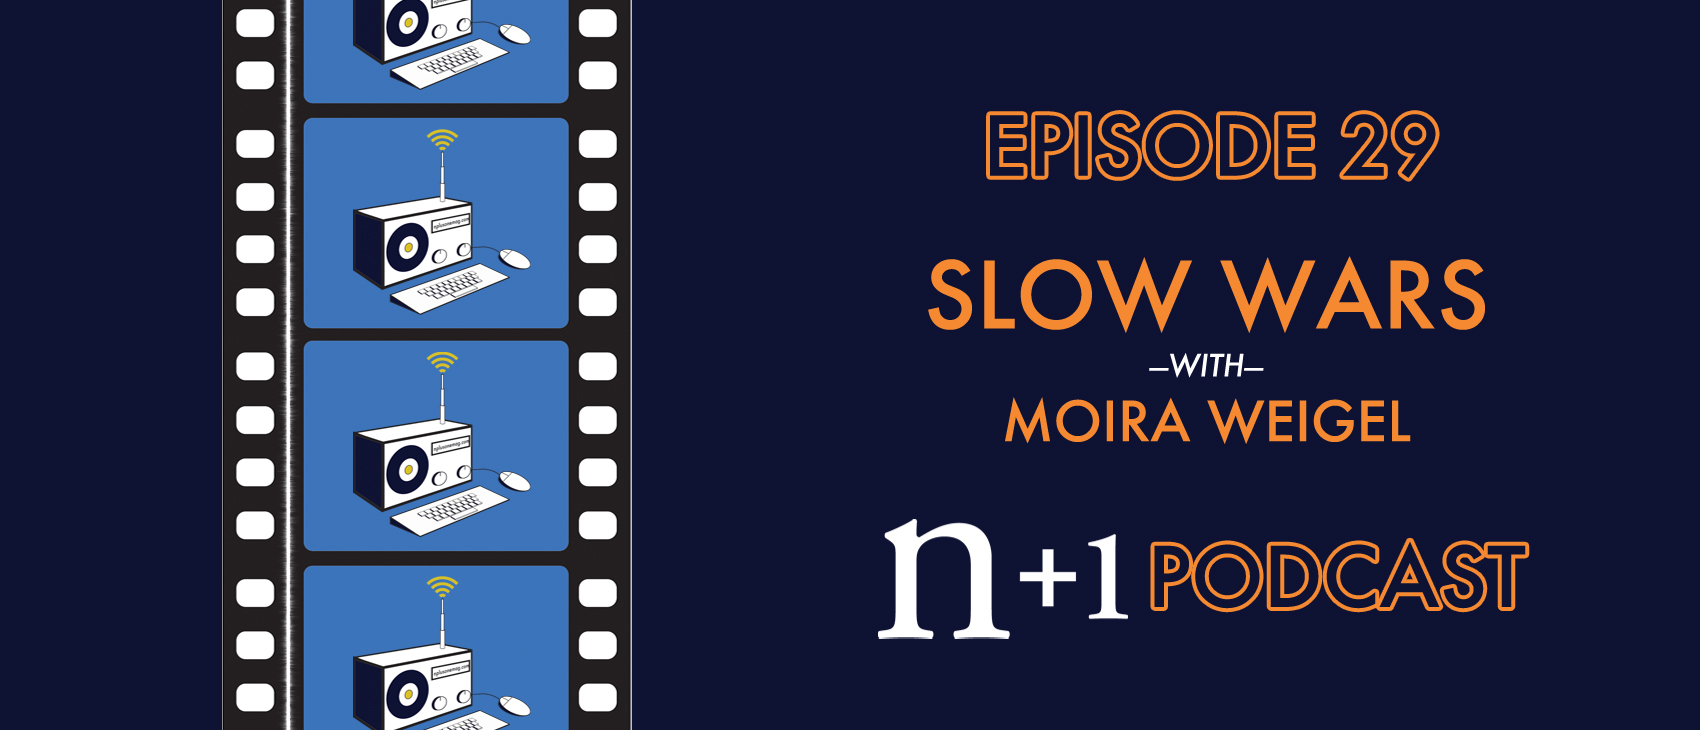 Episode 29: Slow Wars